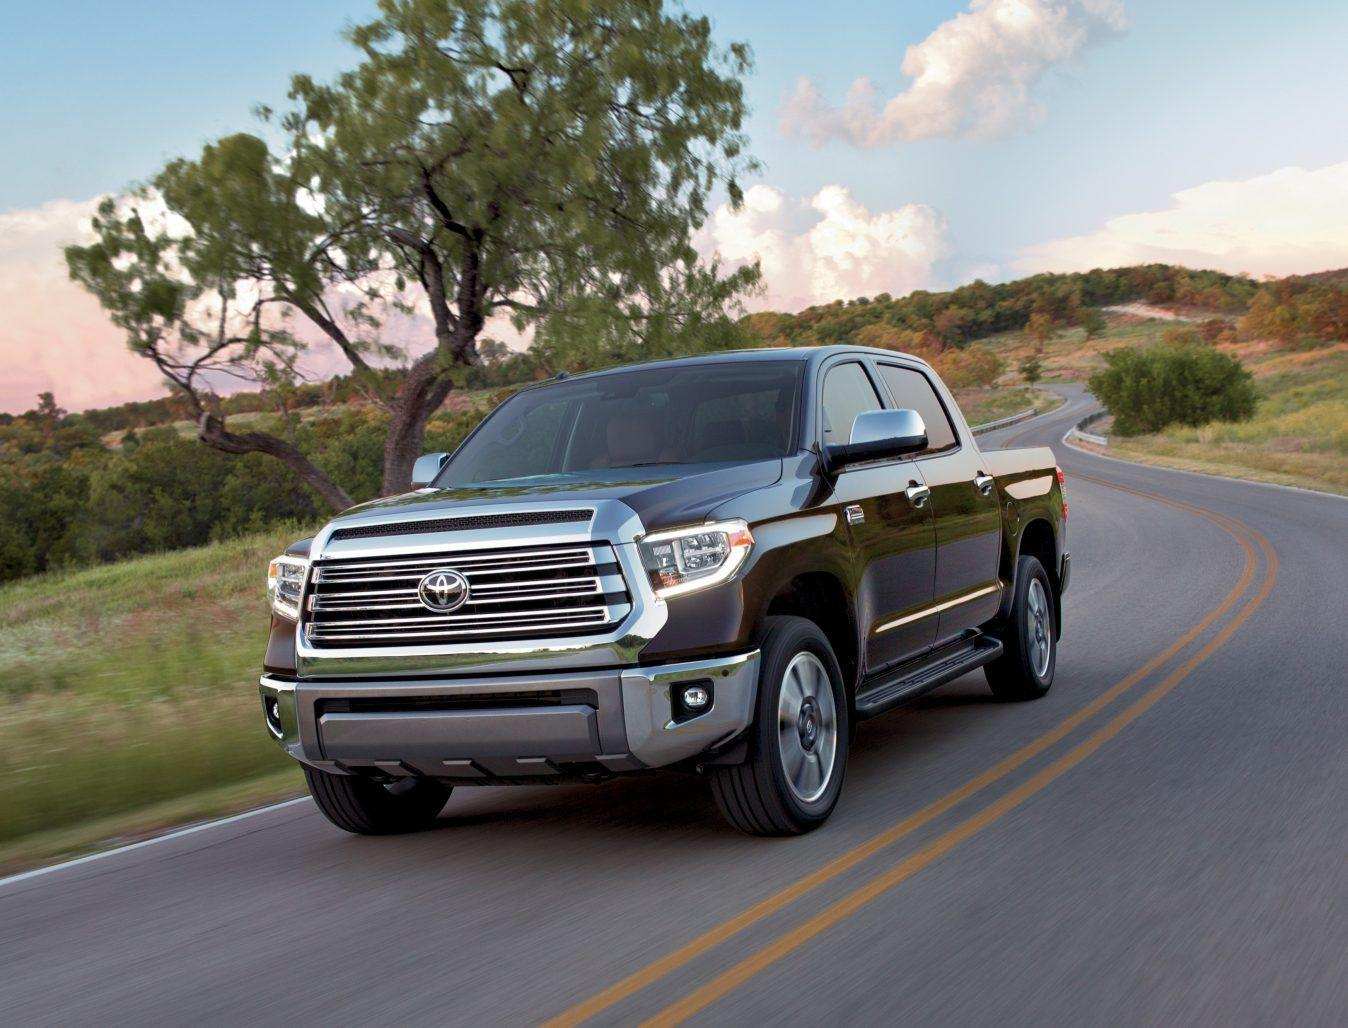 2019 Toyota Tundra Exterior HD Wallpapers